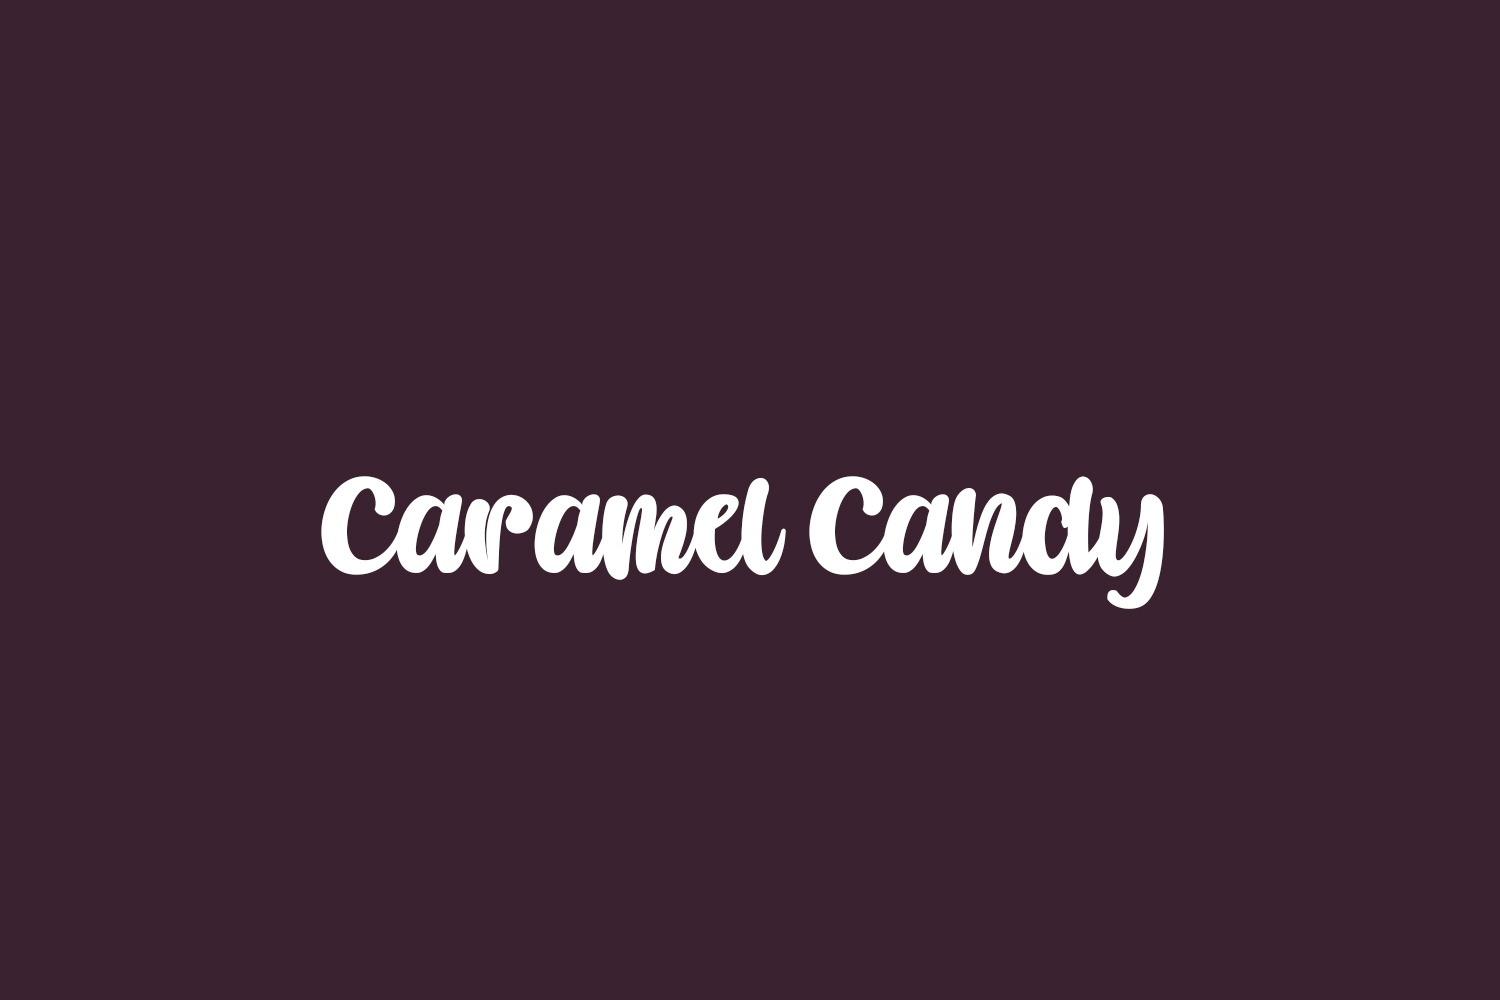 Caramel Candy Free Font